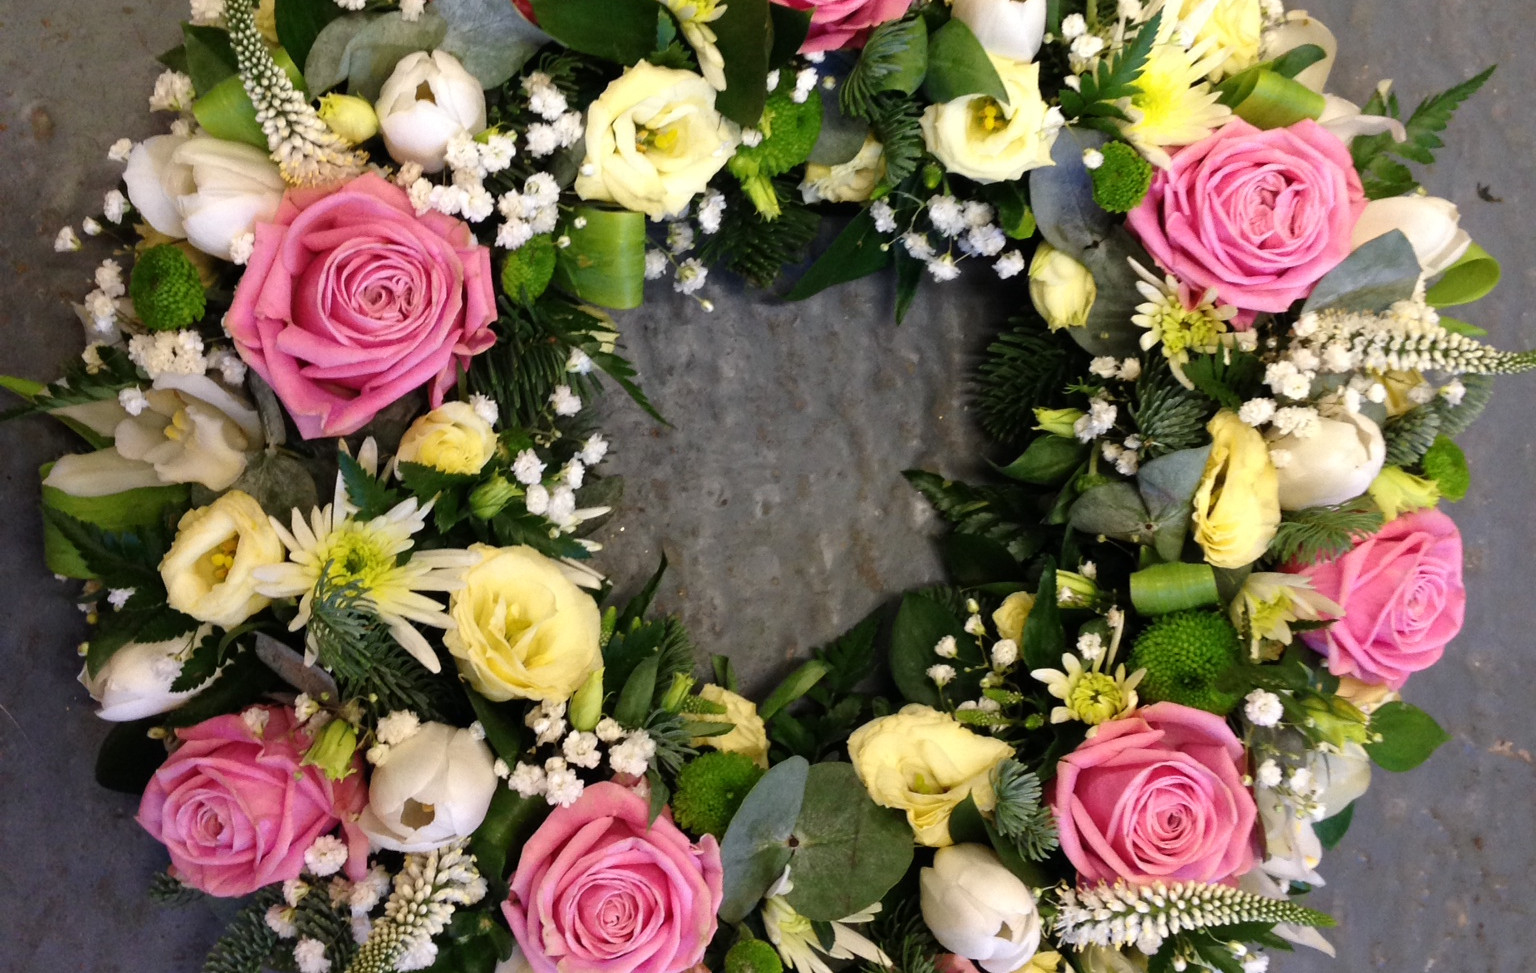 Funeral Wreath - With Pink Roses